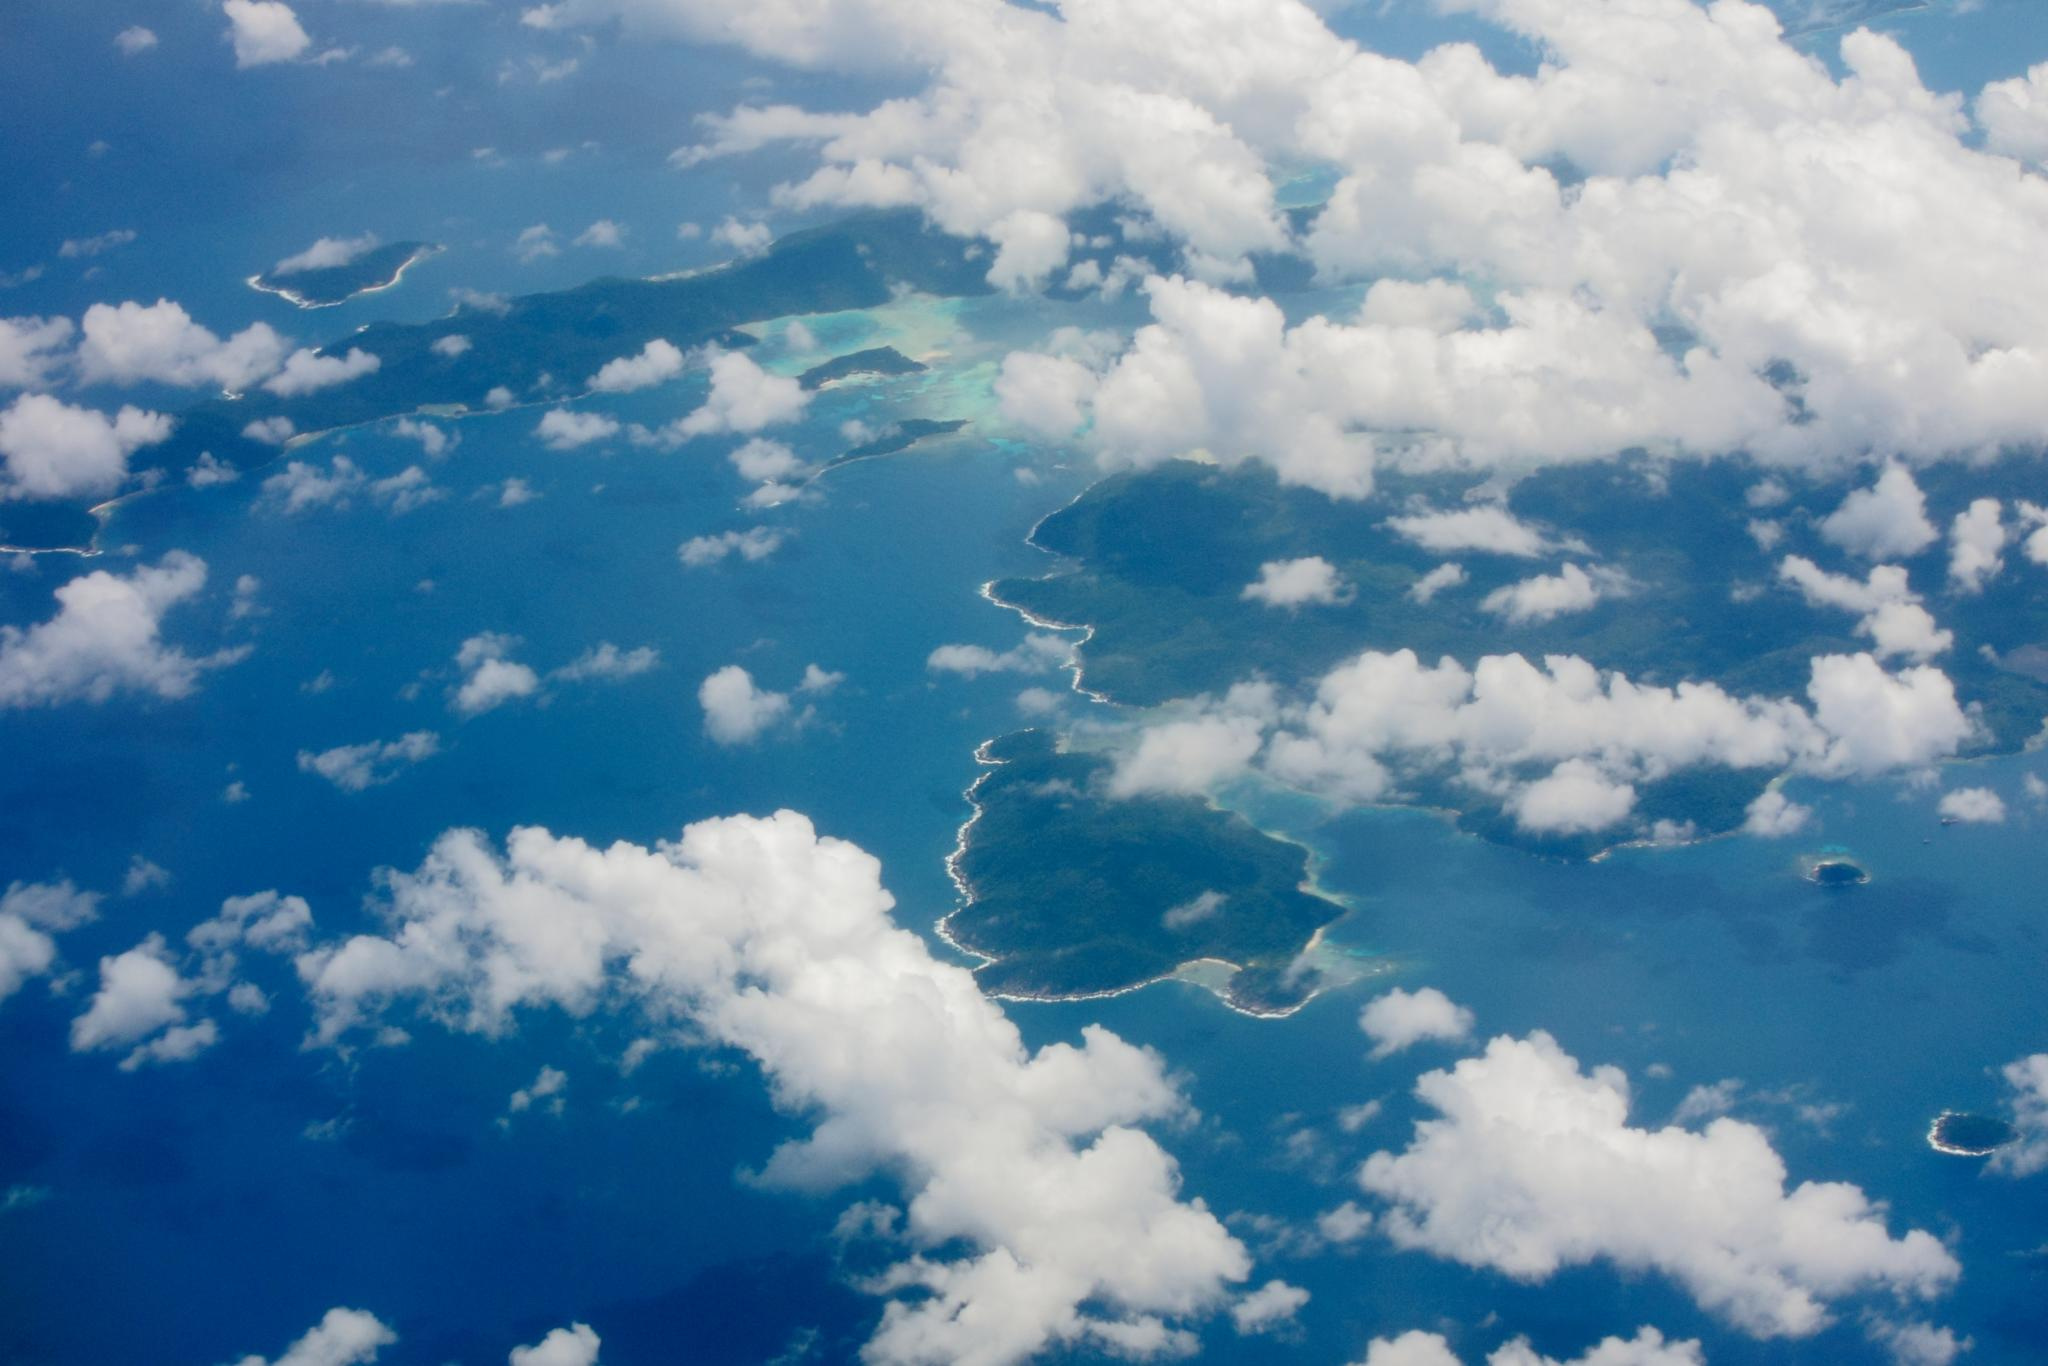 An aerial view onto clouds over the South China Sea